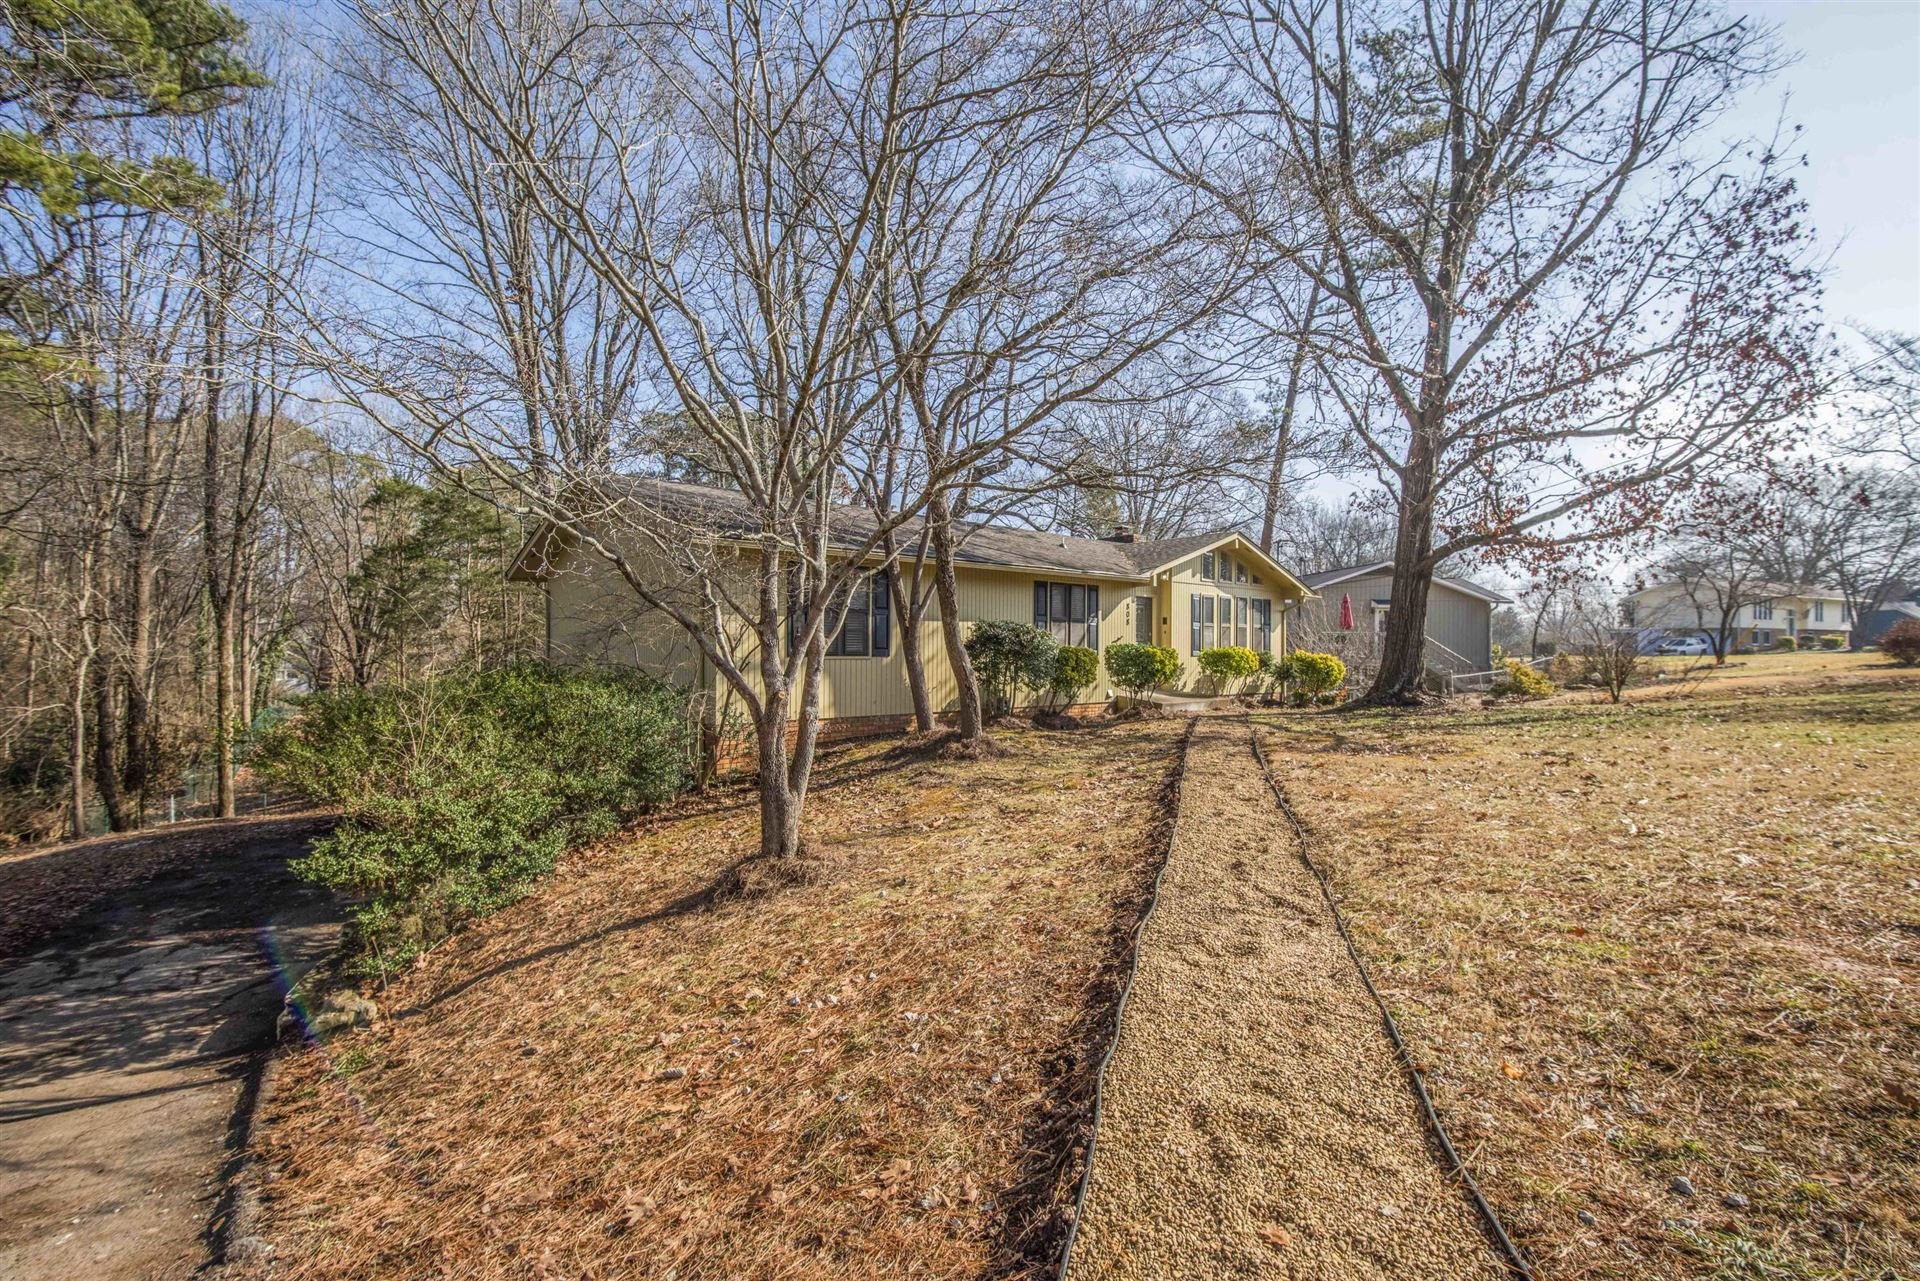 Photo of 808 Gulfwood Drive, Knoxville, TN 37923 (MLS # 1140934)